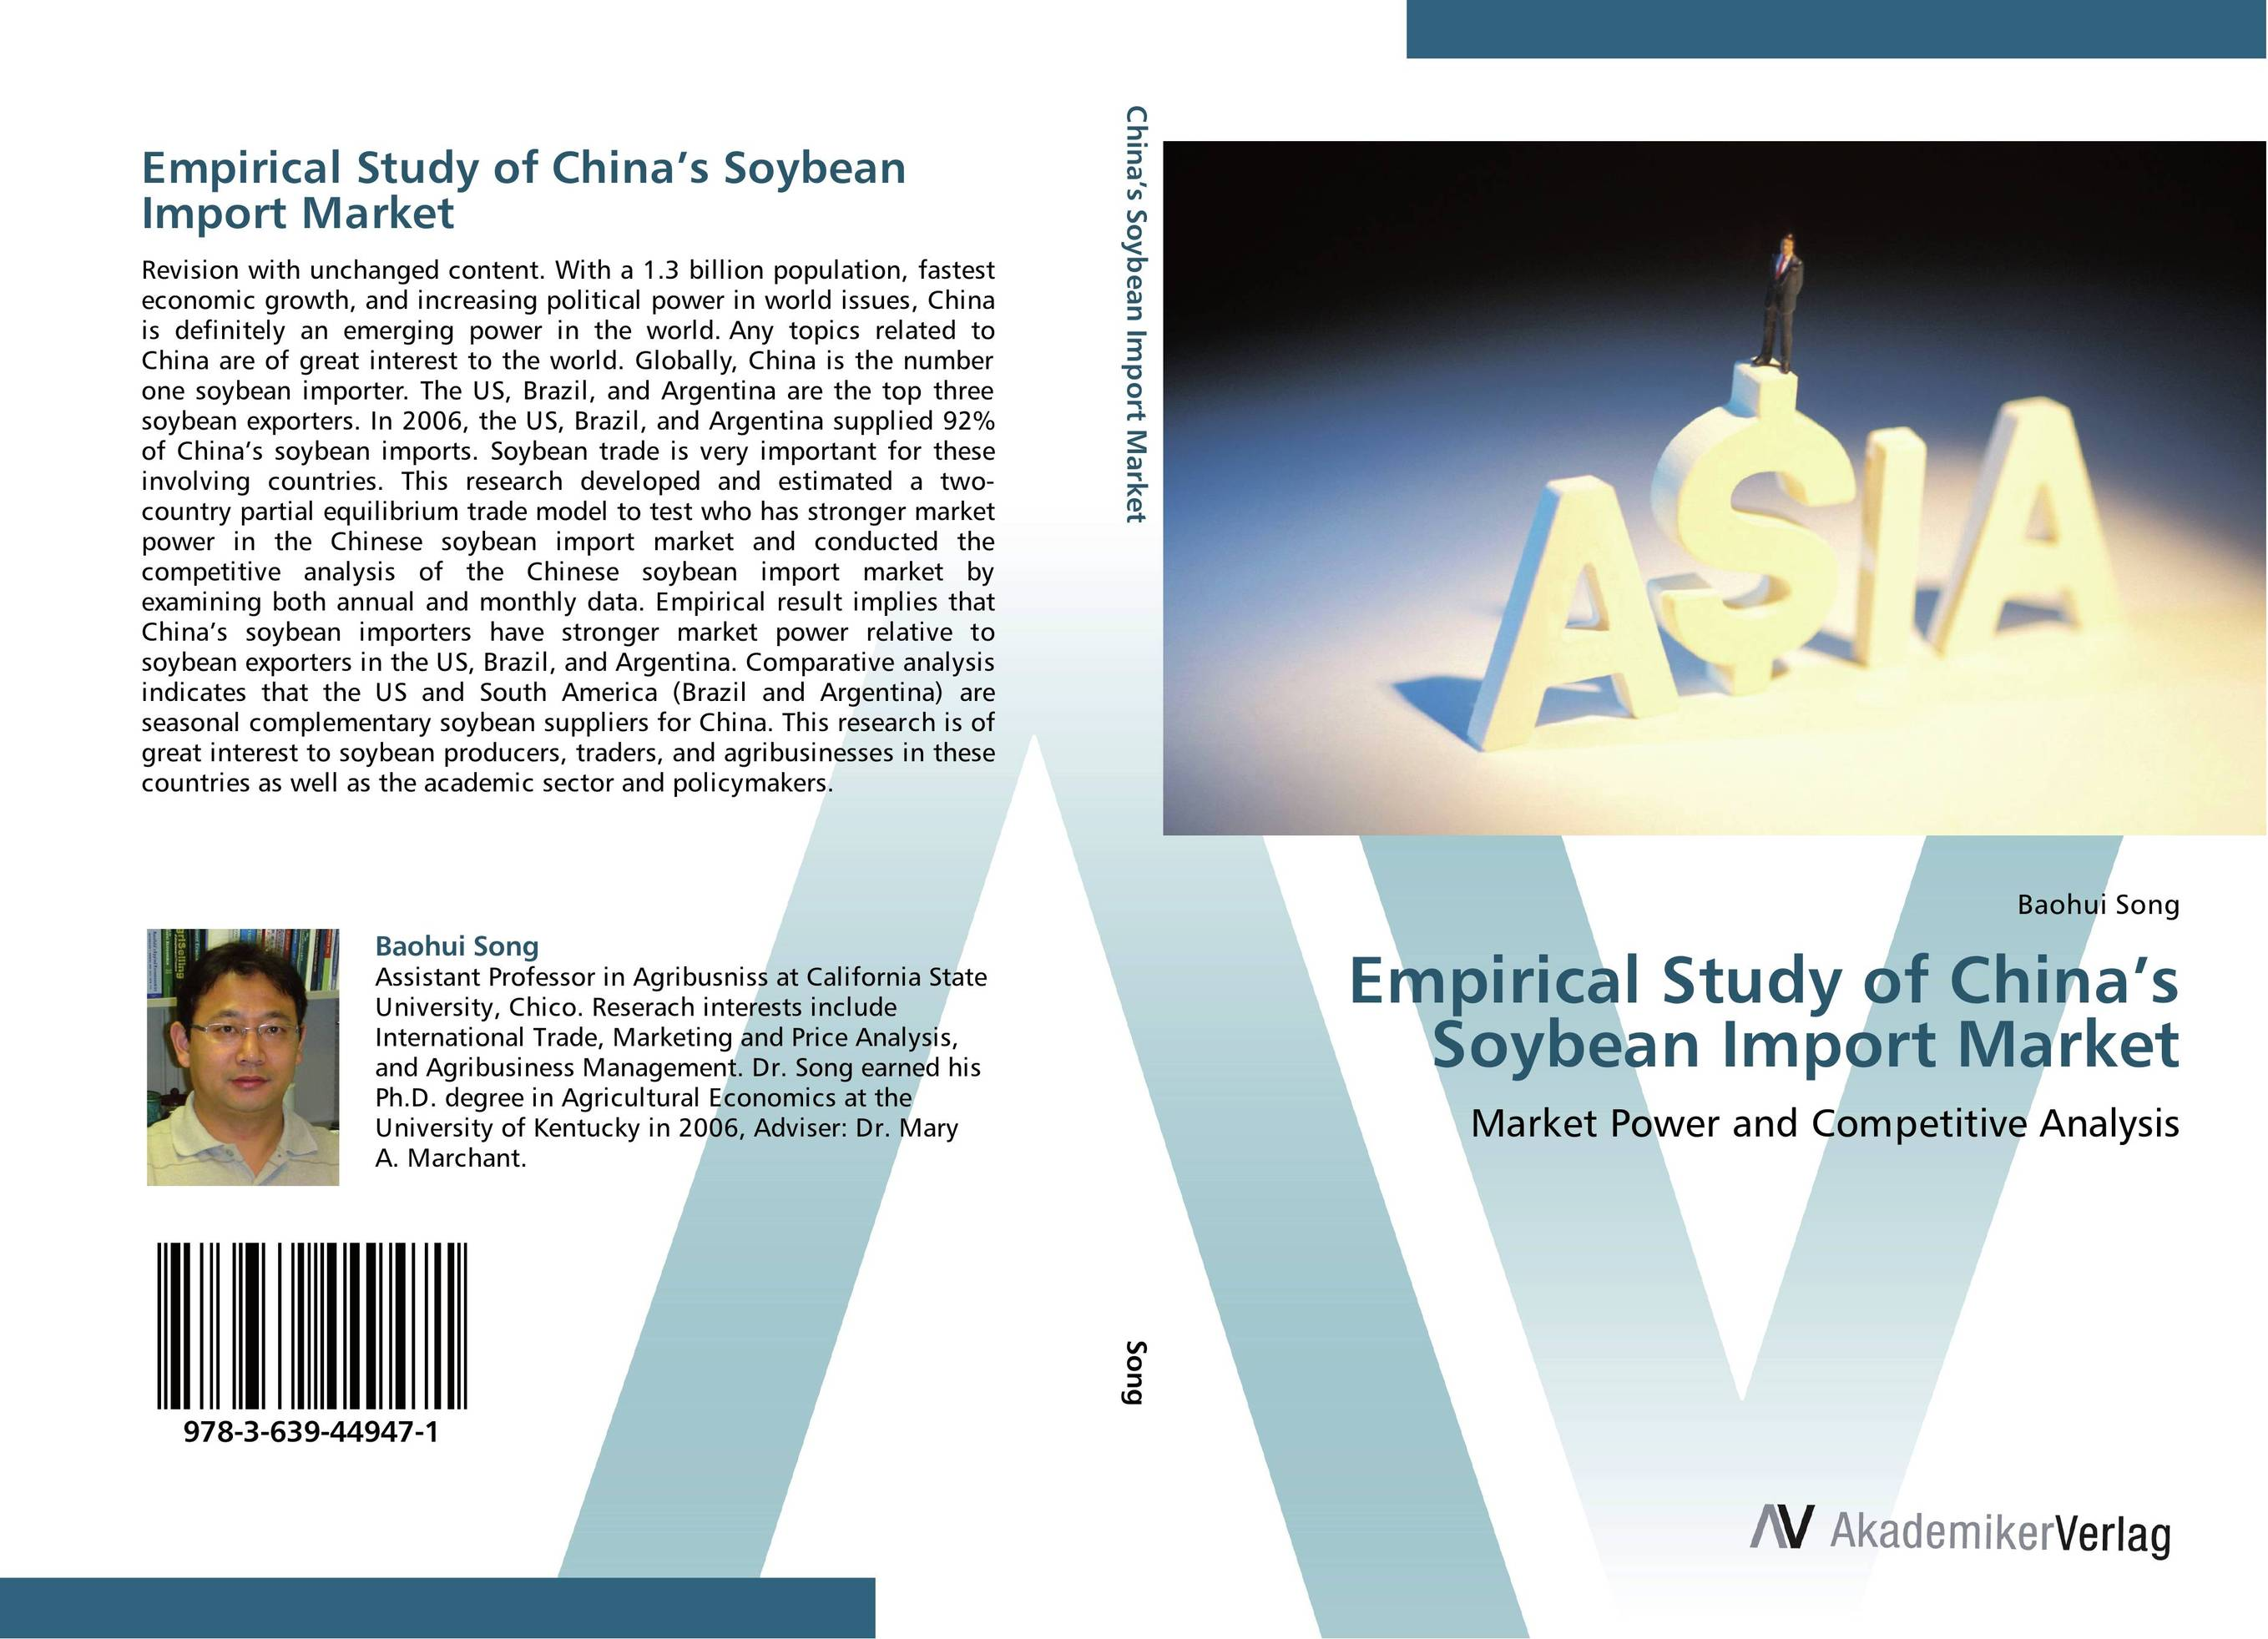 Empirical Study of China's Soybean Import Market arcade ndoricimpa inflation output growth and their uncertainties in south africa empirical evidence from an asymmetric multivariate garch m model